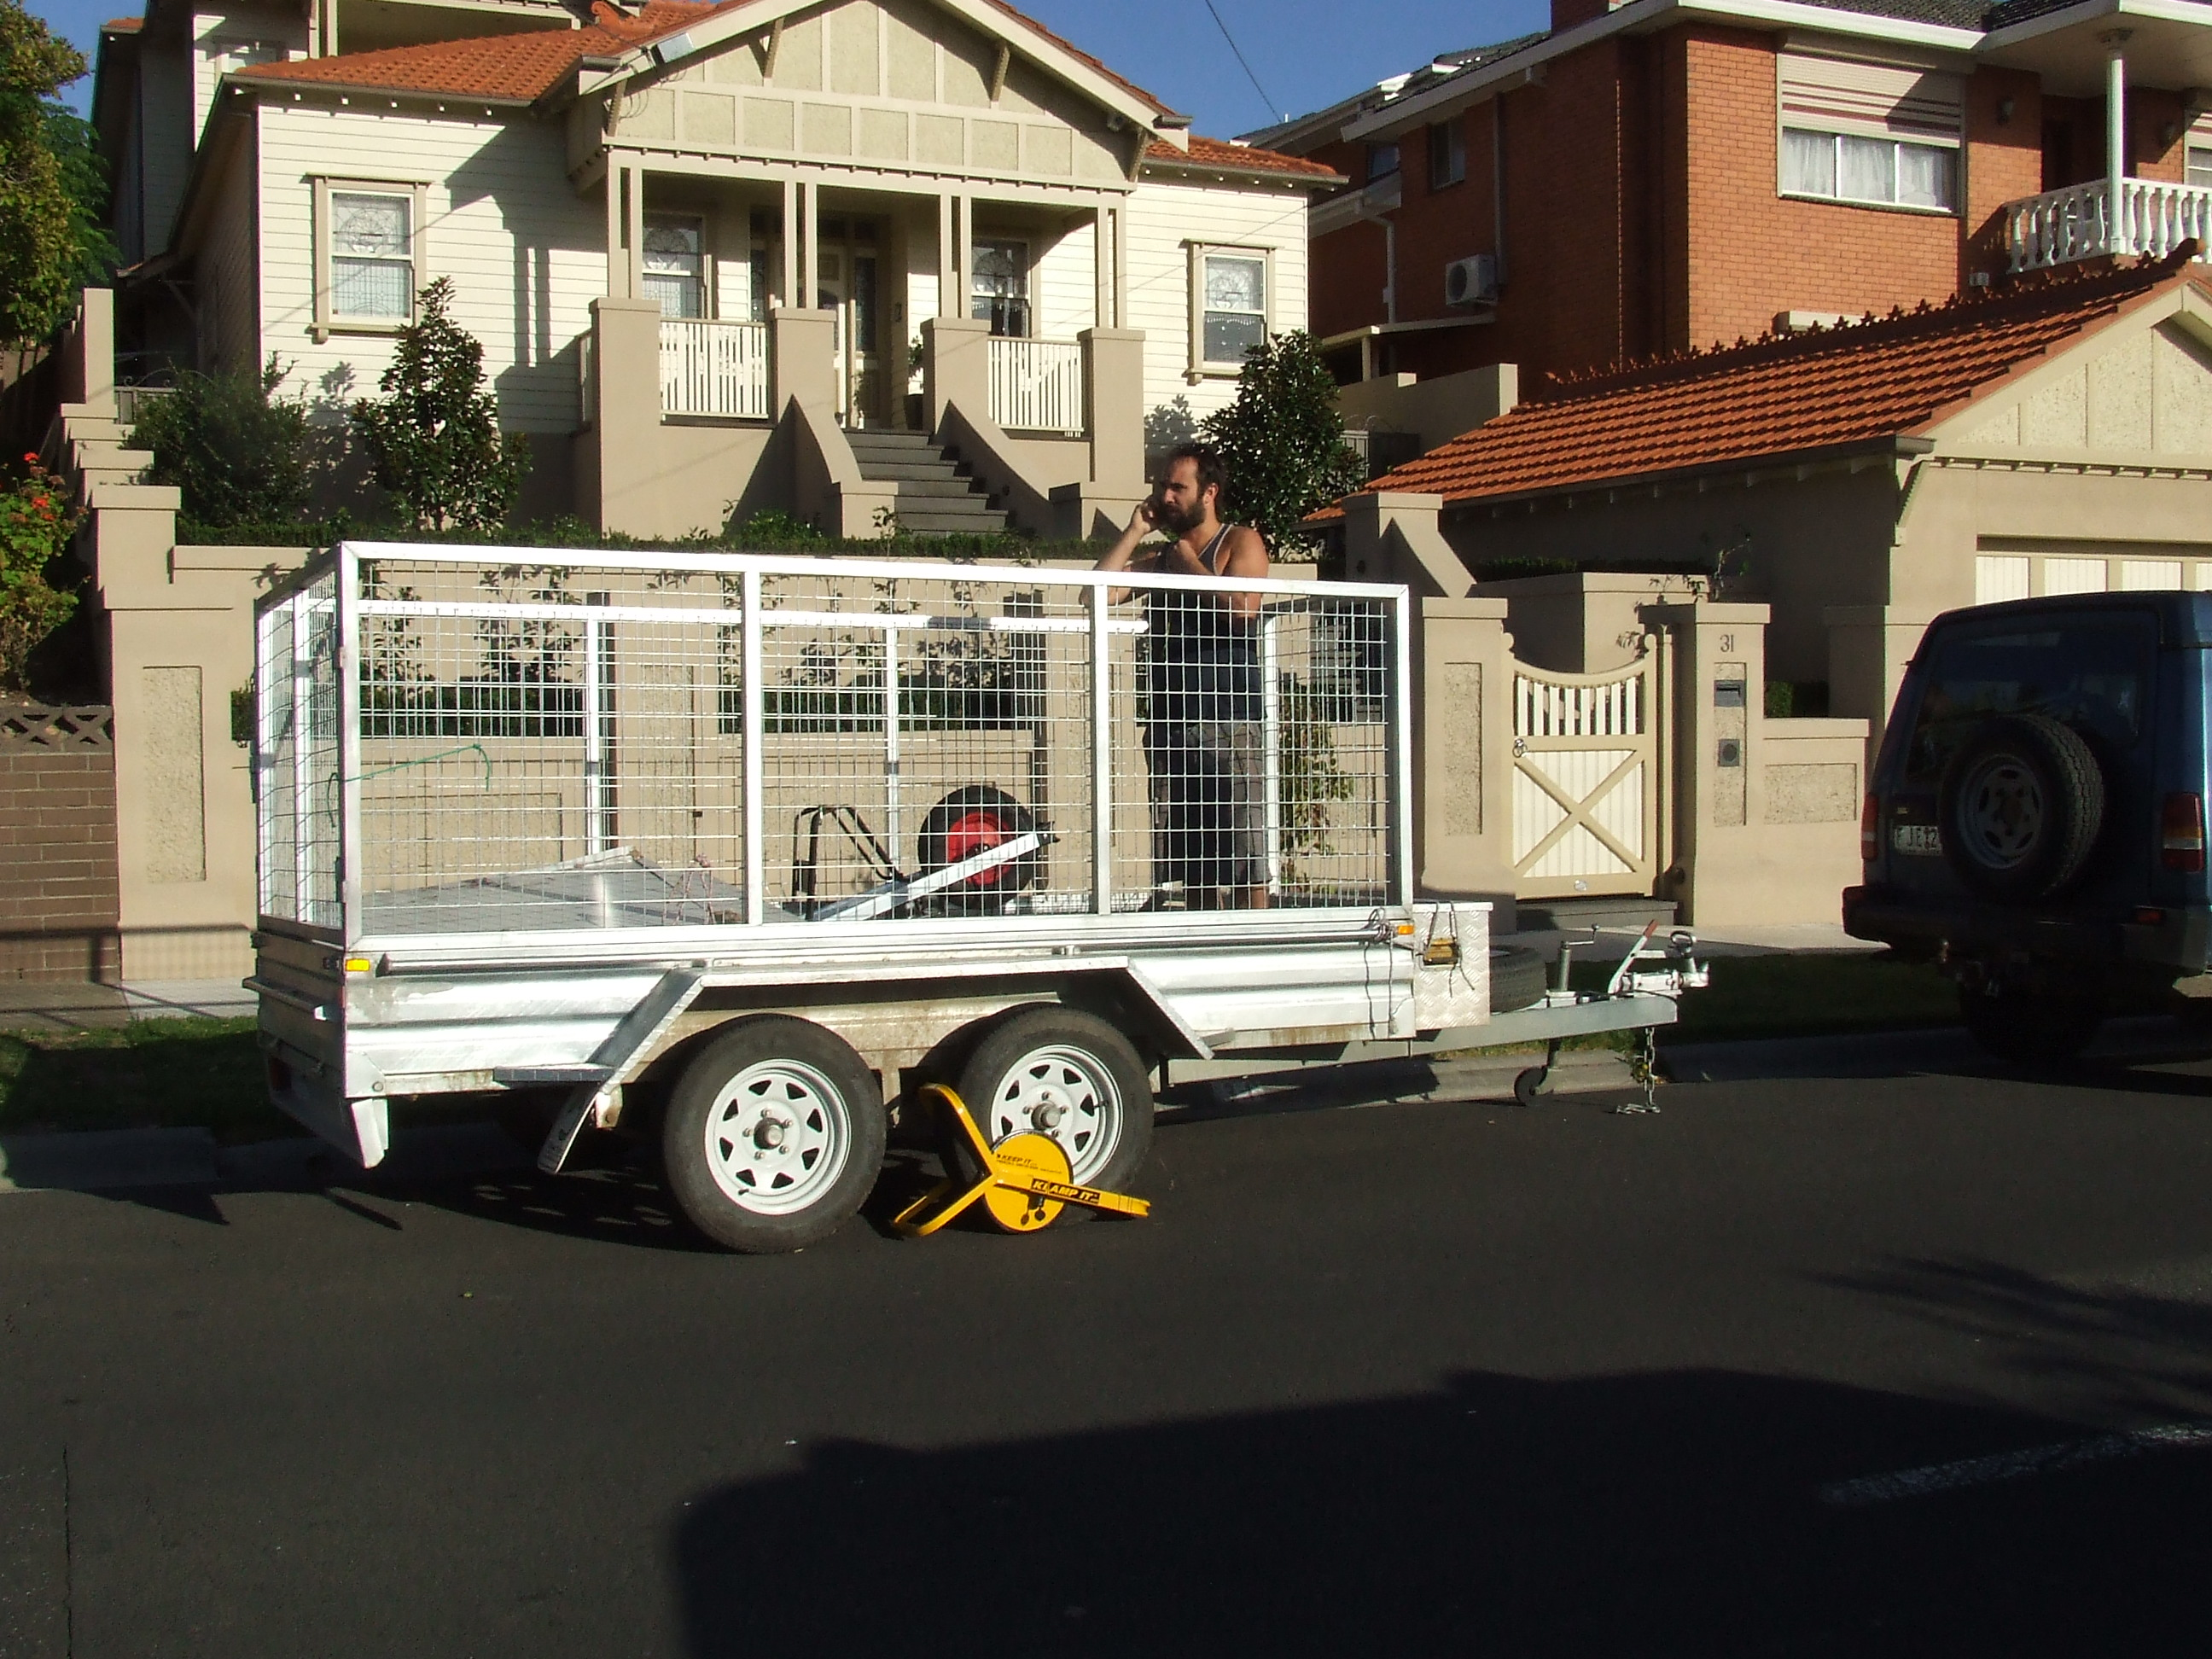 The trailer stolen in 2015.